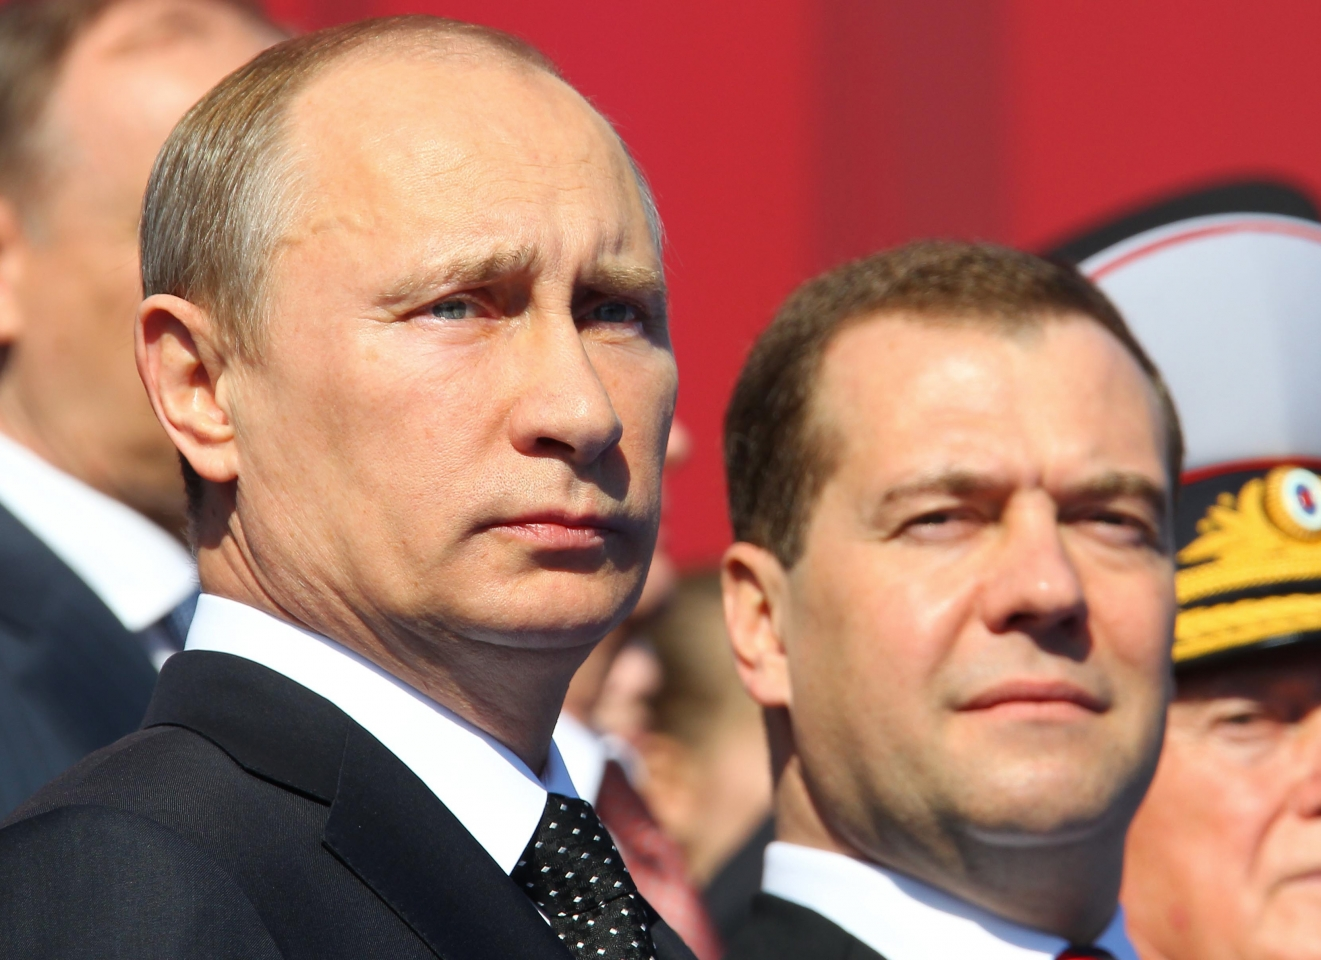 Russian pm putin gestures as president medvedev looks on during a news conference after voting closed in